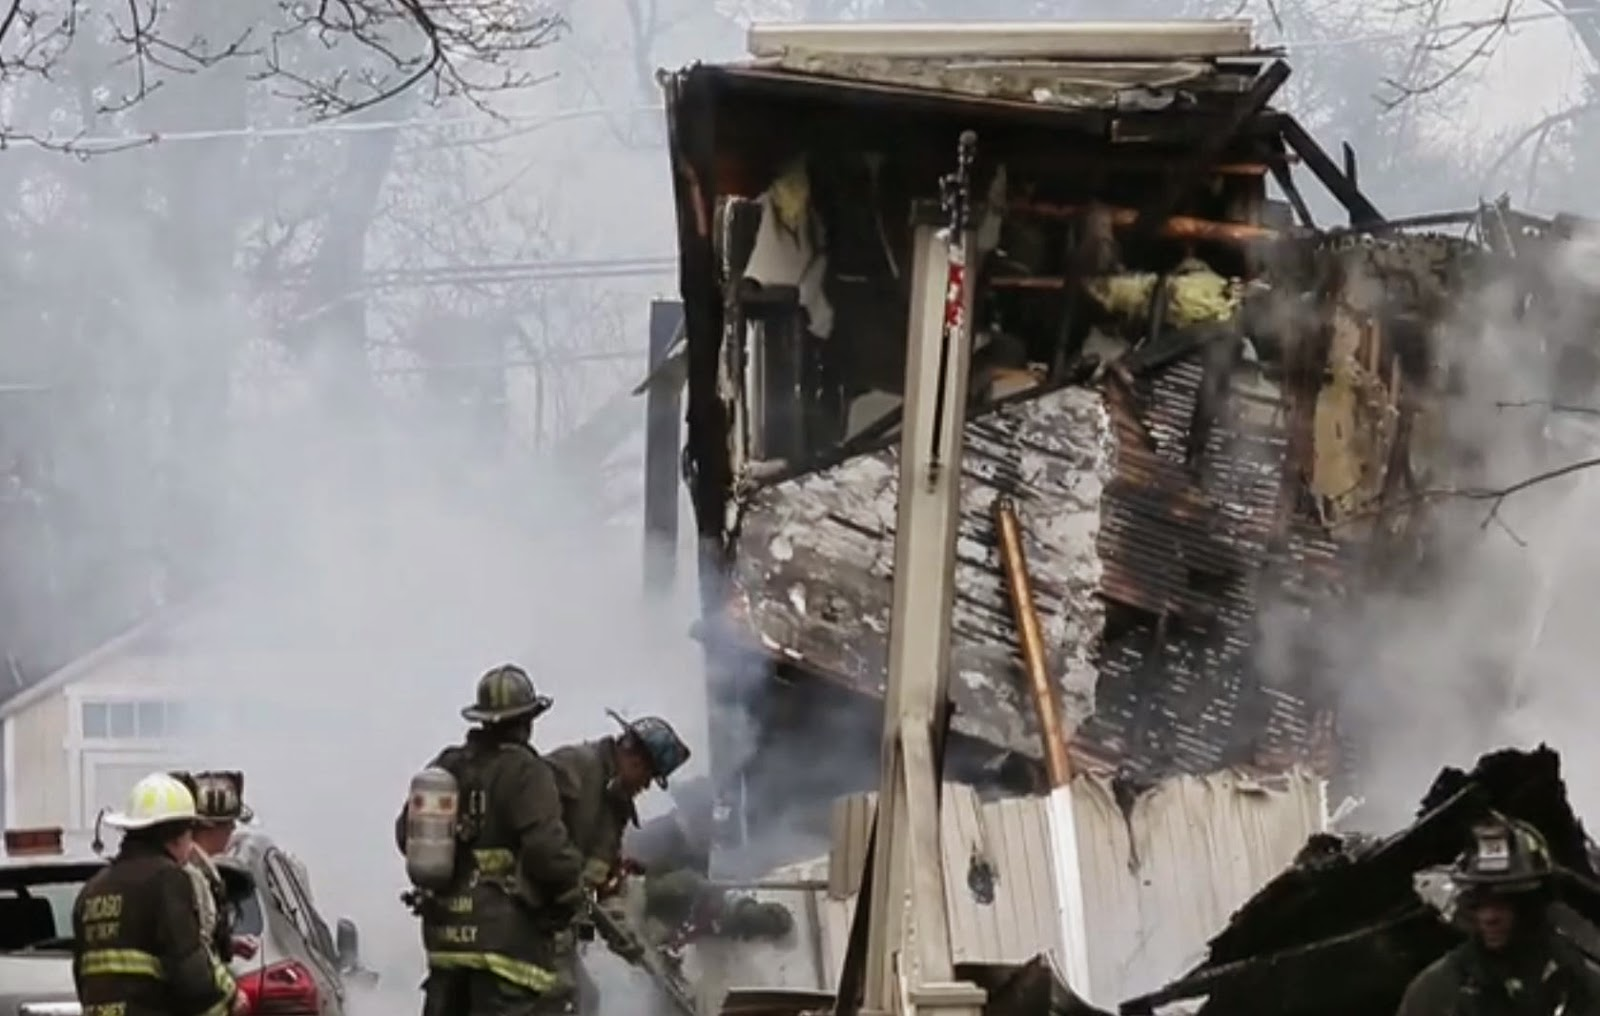 THE UNSAFE GAS ANOTHER NATURAL GAS EXPLOSION DESTROYS